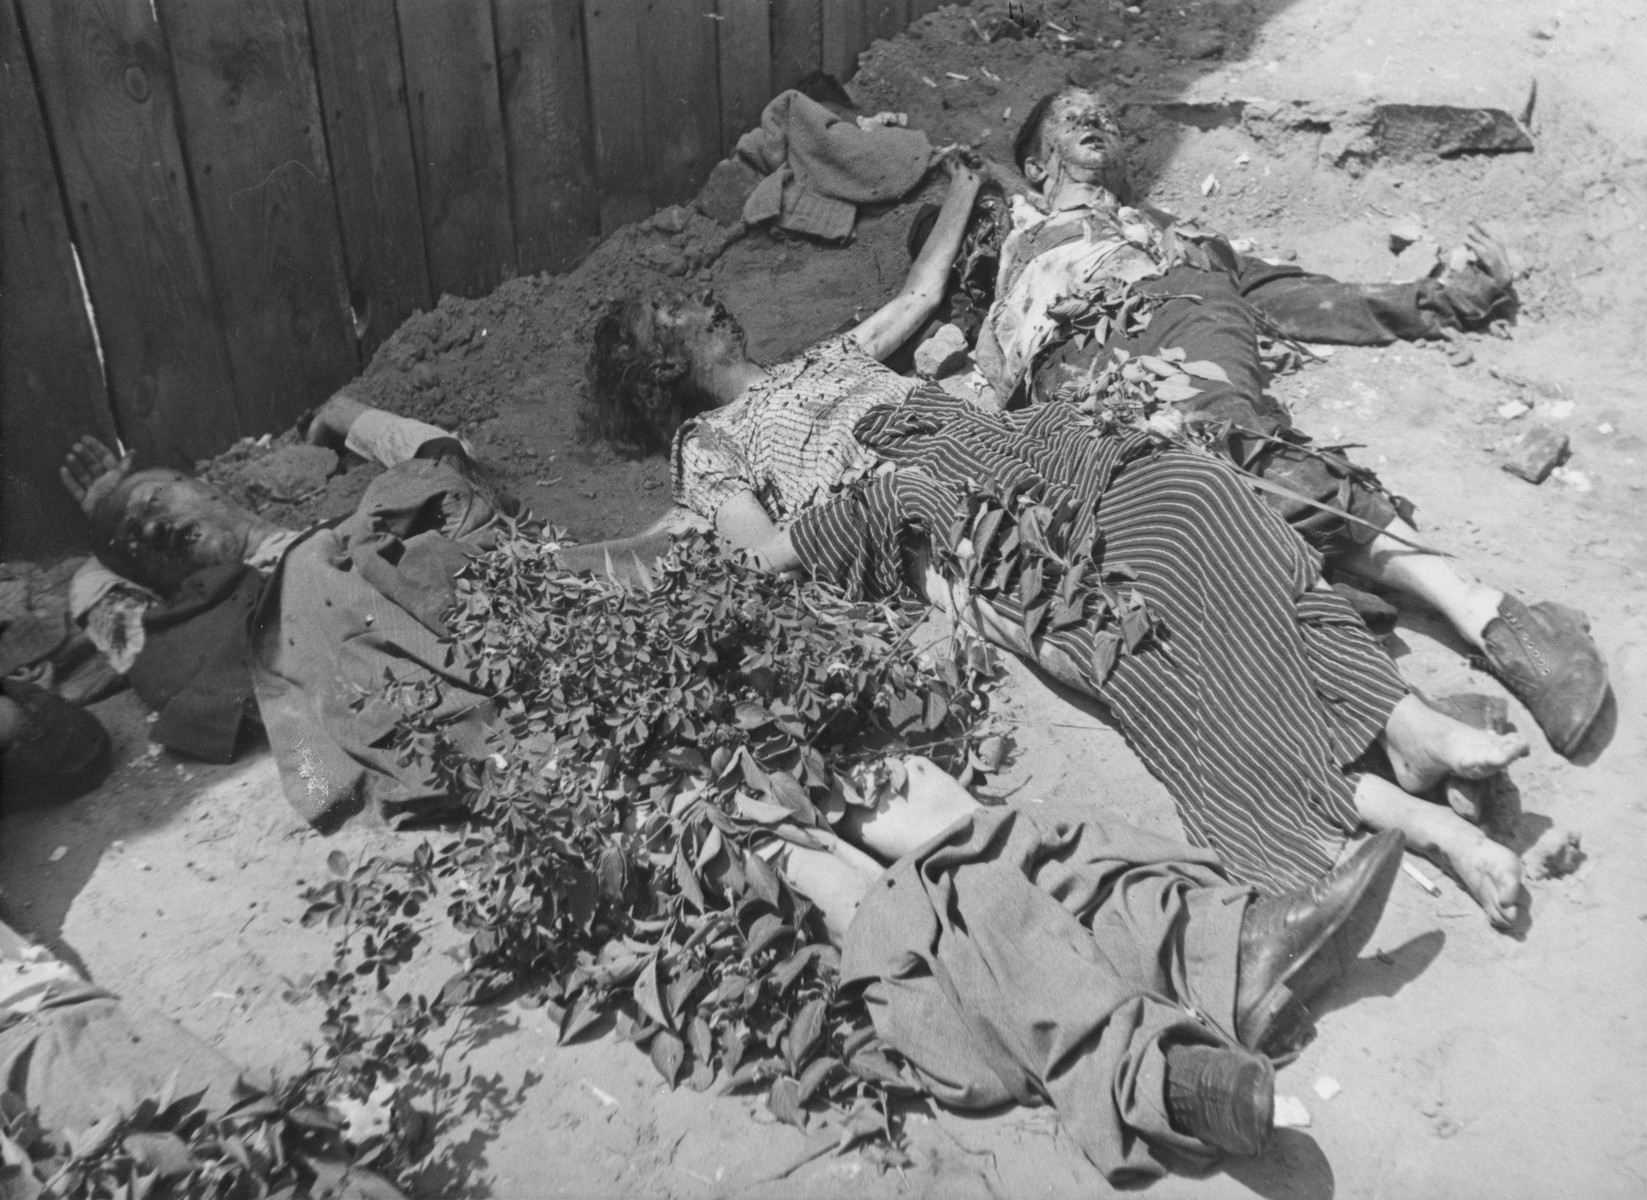 """The corpses of individuals murdered by the NKVD (Soviet Secret Police) in the courtyard of a Lvov city prison.  The original caption reads:  """"Series: This is how the GPU """"work"""" in Lemberg.   By daylight bodies of murdered men and women are pulled from a basement in the Lemberg GPU prison."""""""